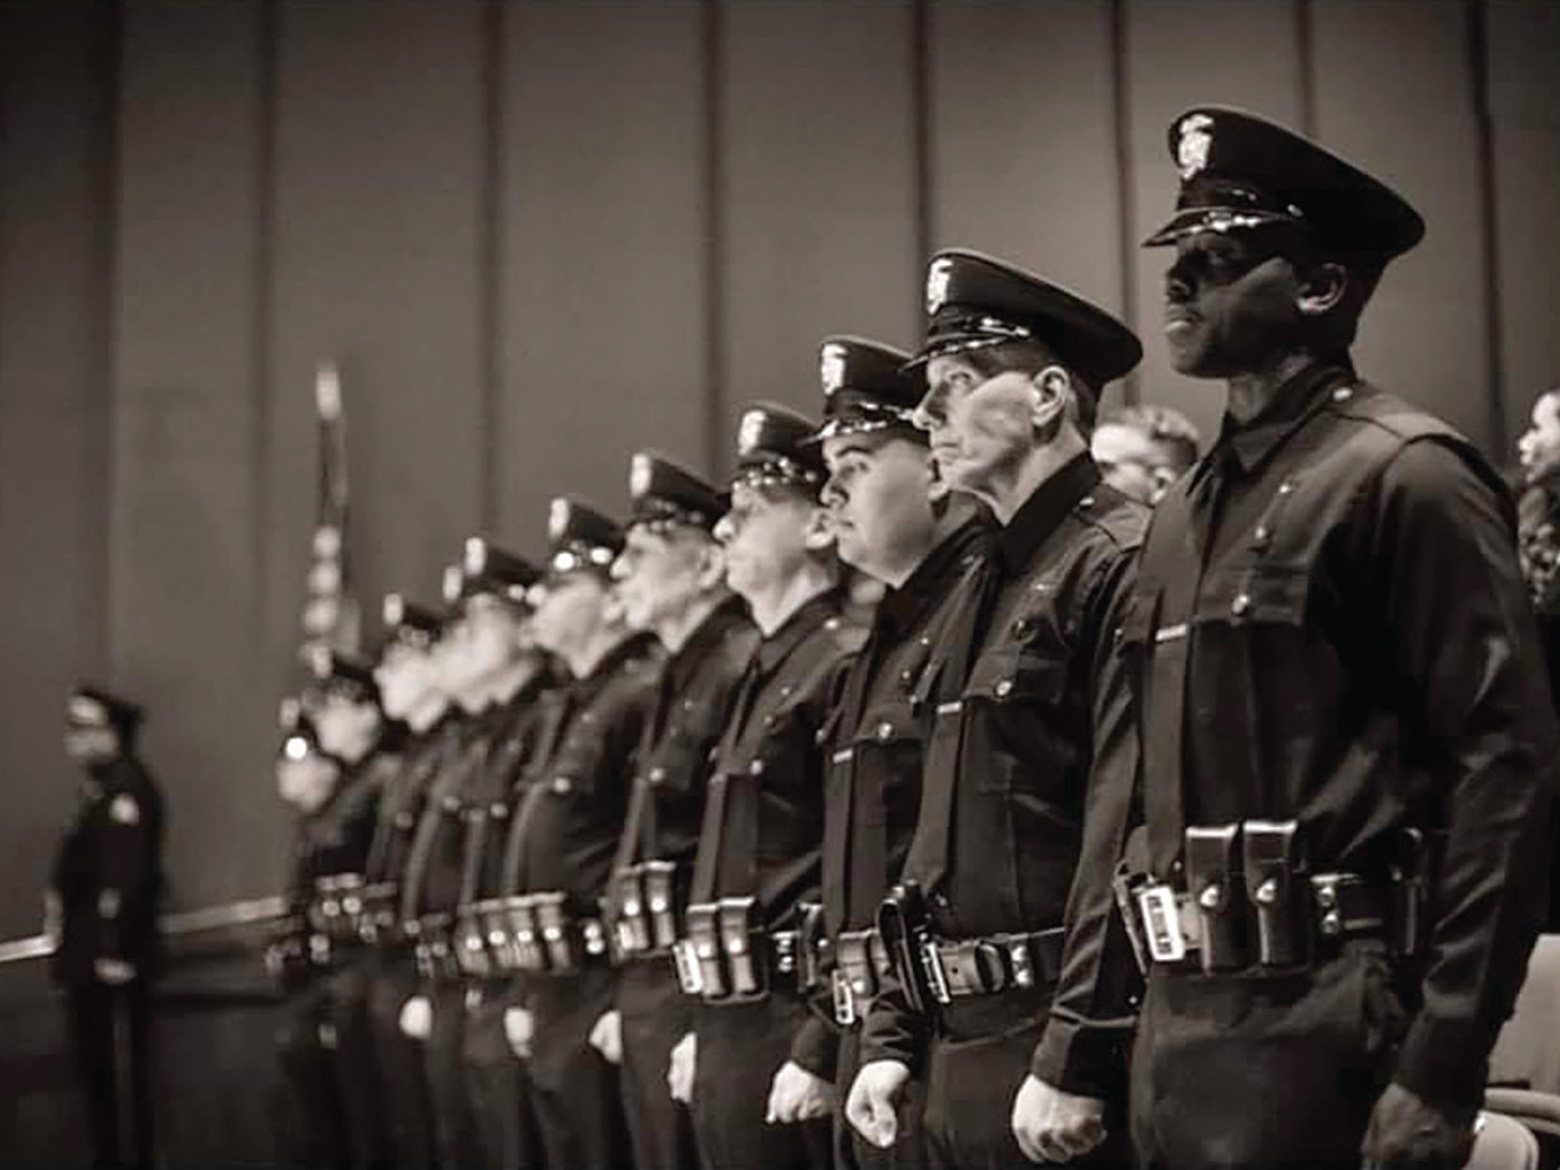 lapd-reserve-corps-70-years-of-protecting-and-serving-19-lapd-reserve-graduation